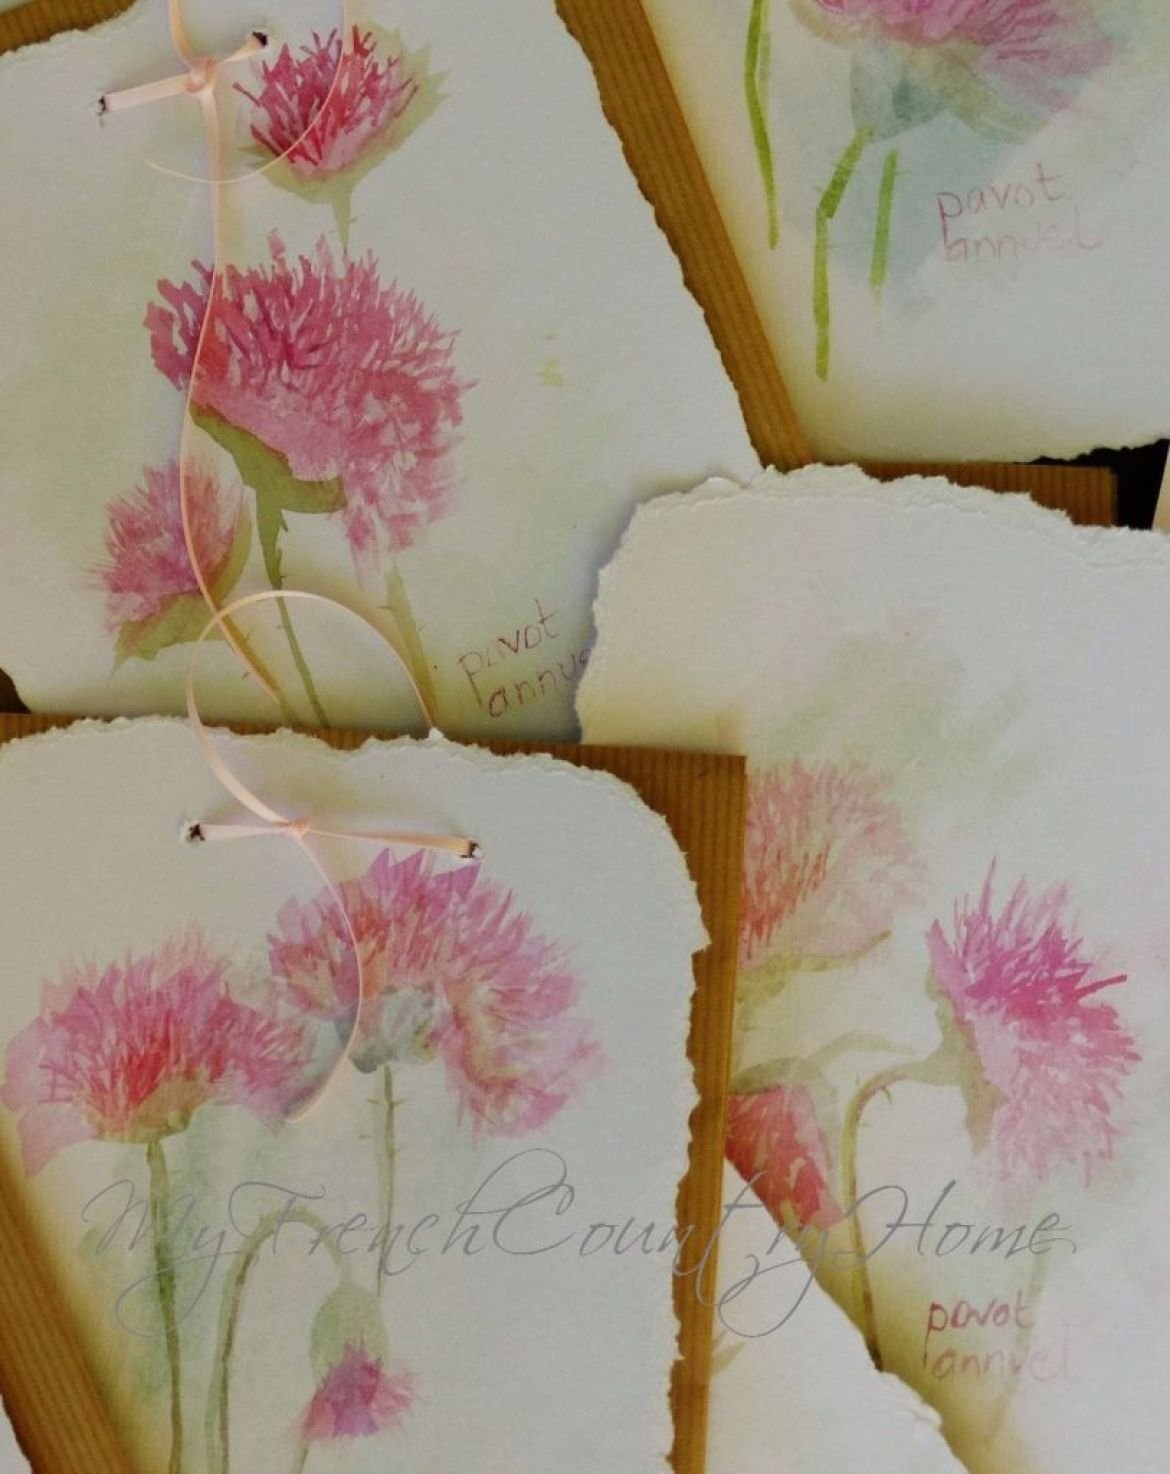 handpainted lables on seed packets